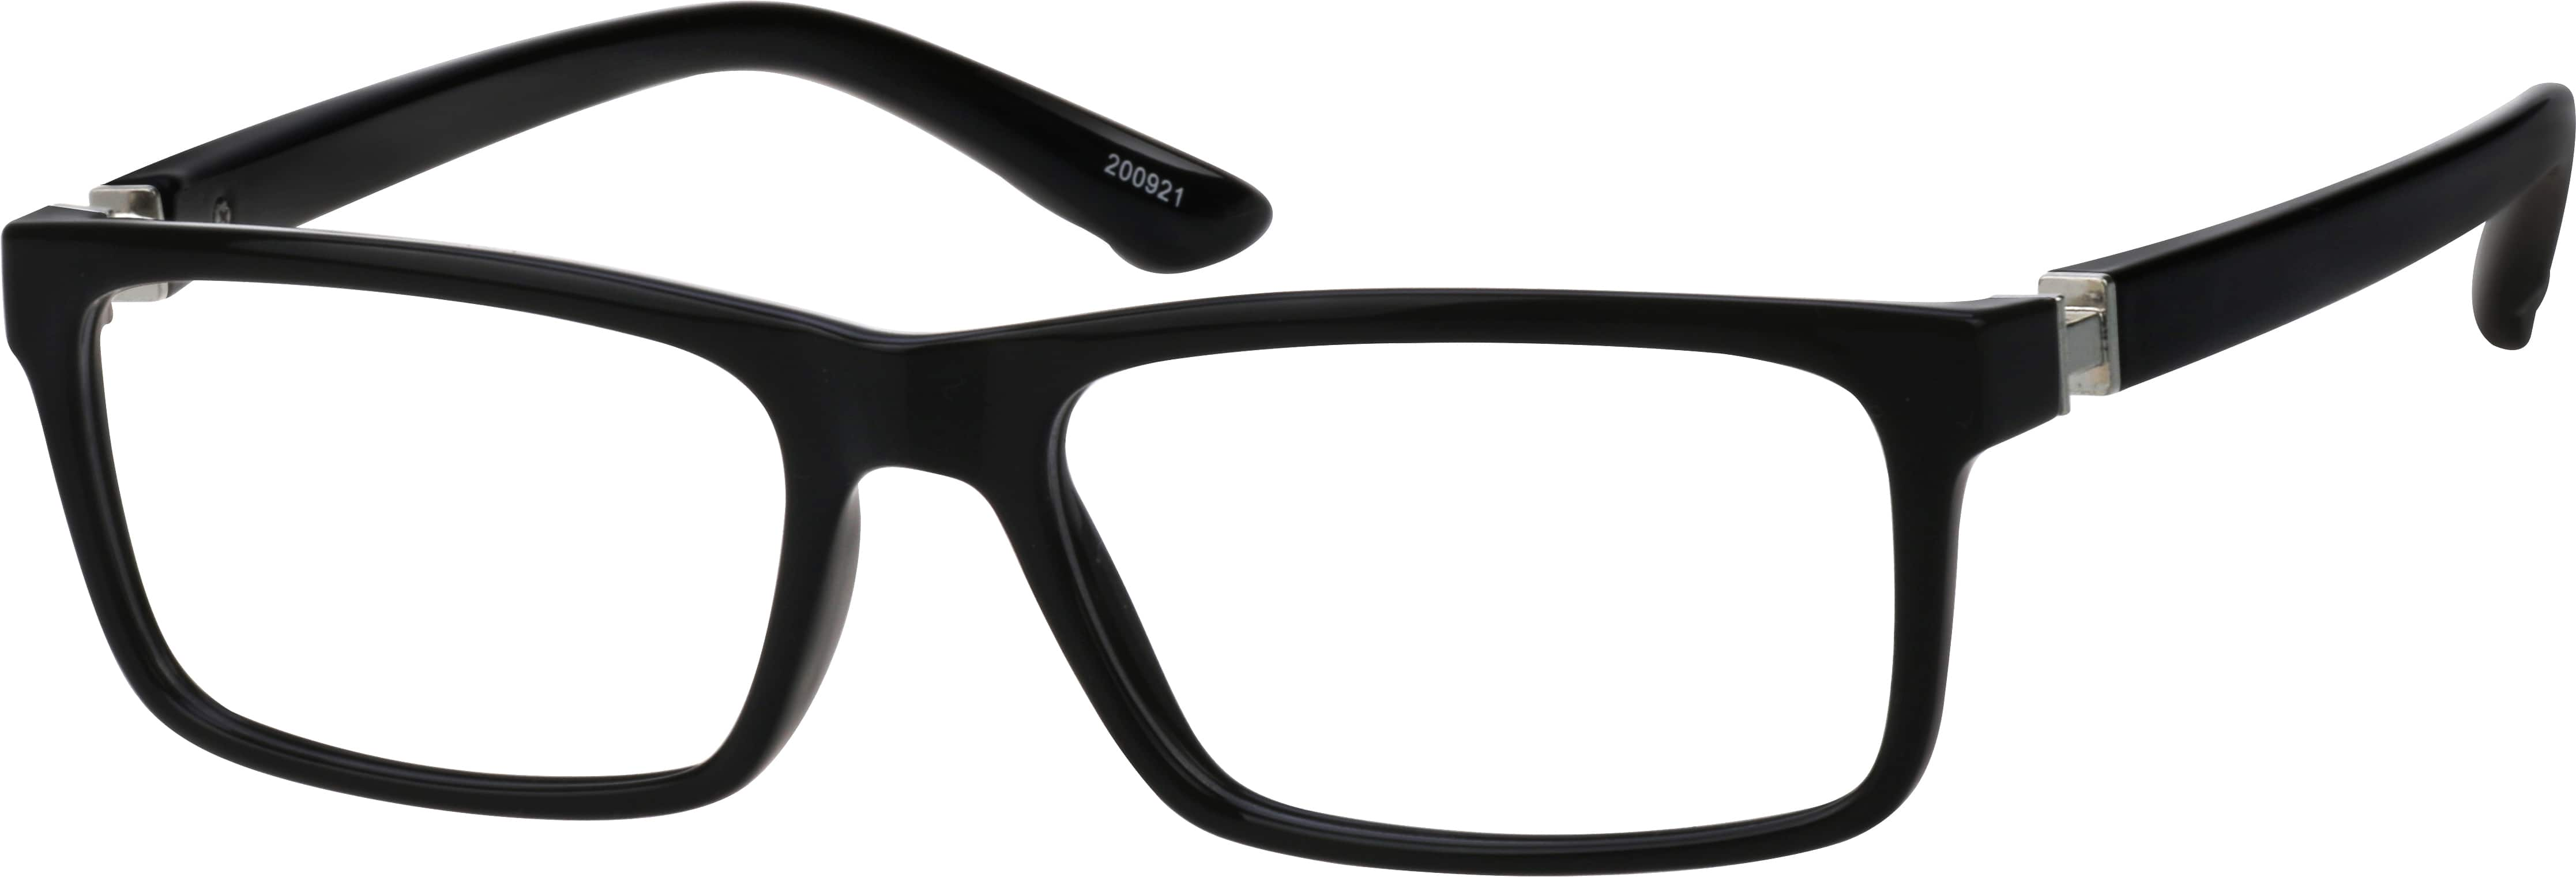 Chic Rectangular Eyeglasses